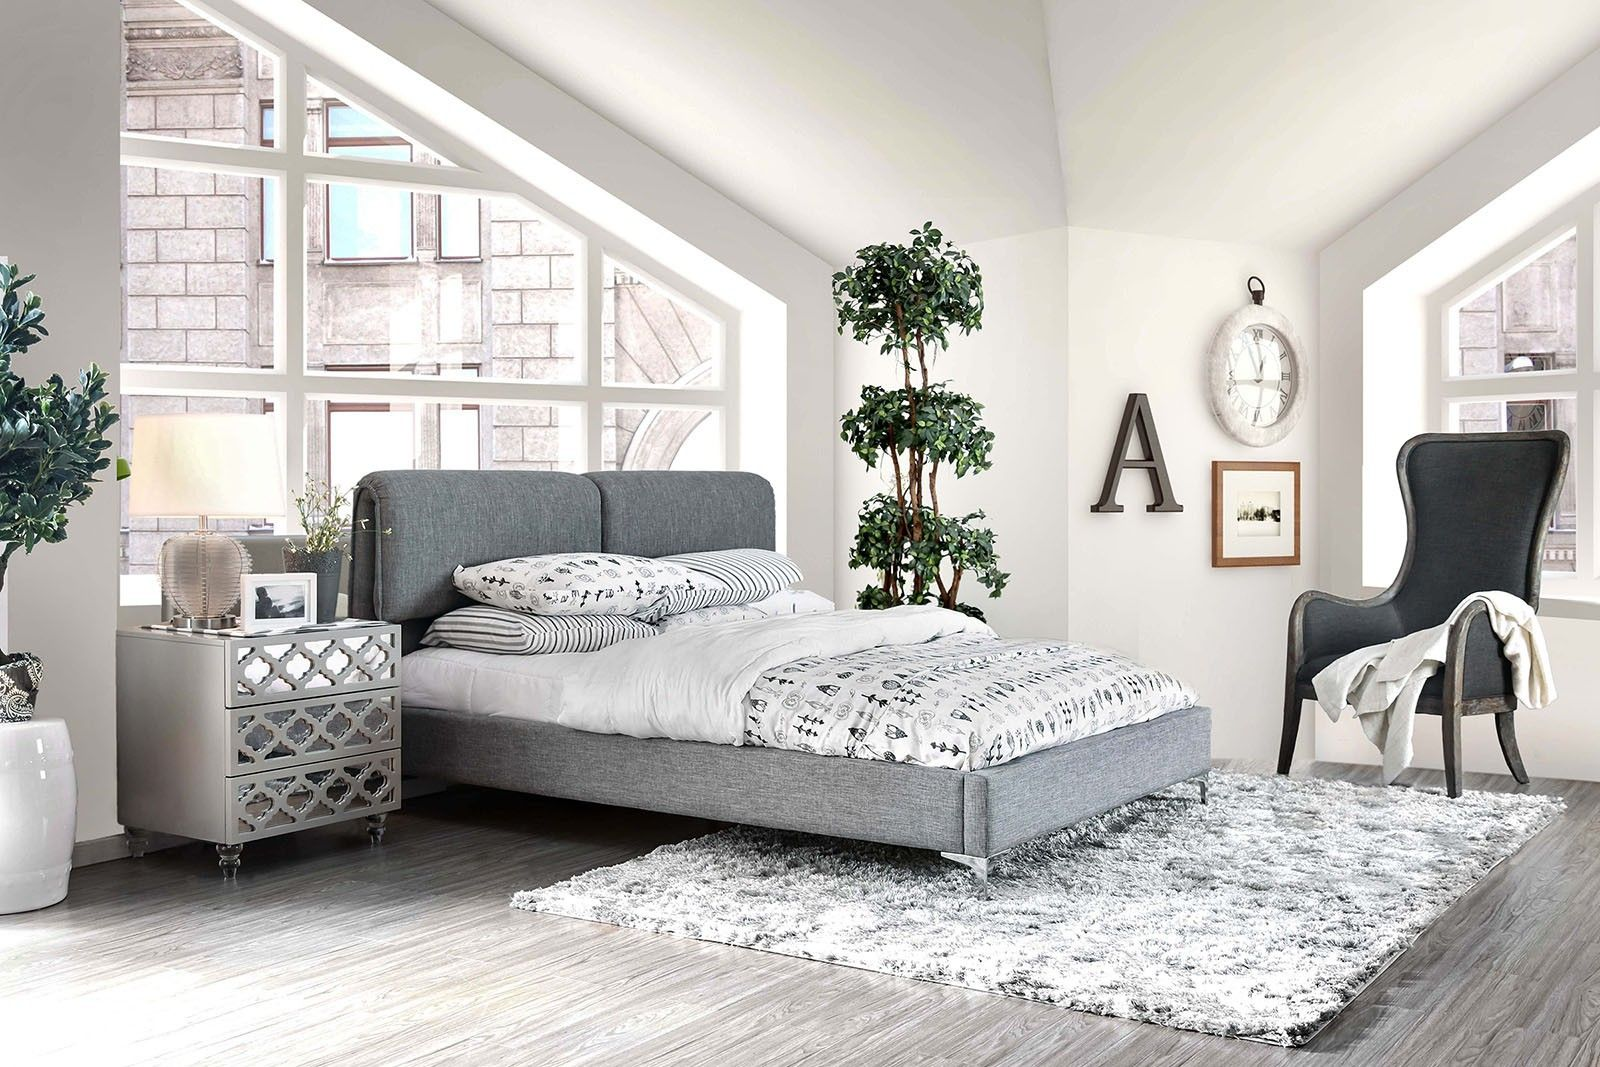 QUEEN SIZE BED (BRAND NEW)(((MATTRESS NOT INCLUDED)))